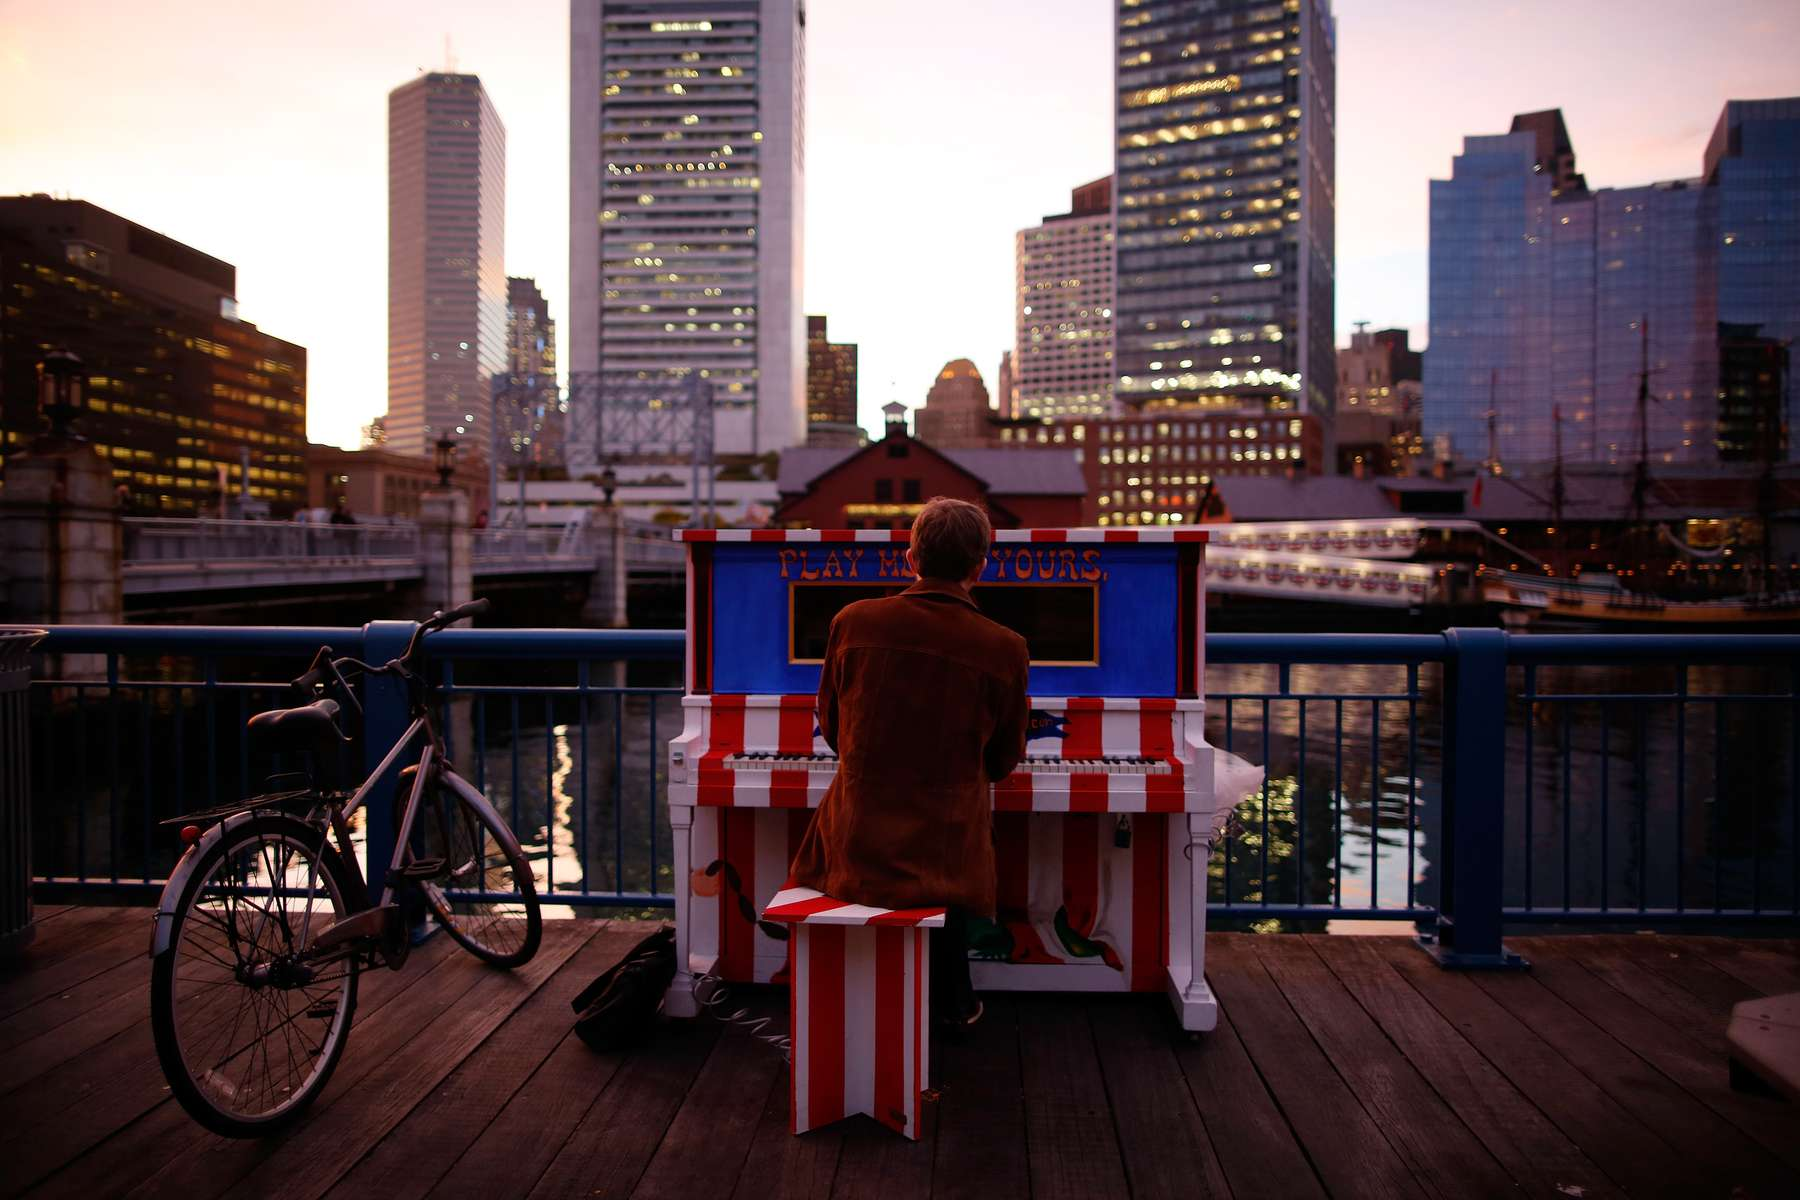 Martin Rohrmeier, of Germany plays on a street piano across from the Boston Tea Party during the last day of Celebrity Series of Boston {quote}Play Me, I'm Yours{quote} in Boston, Massachusetts October 14, 2013.